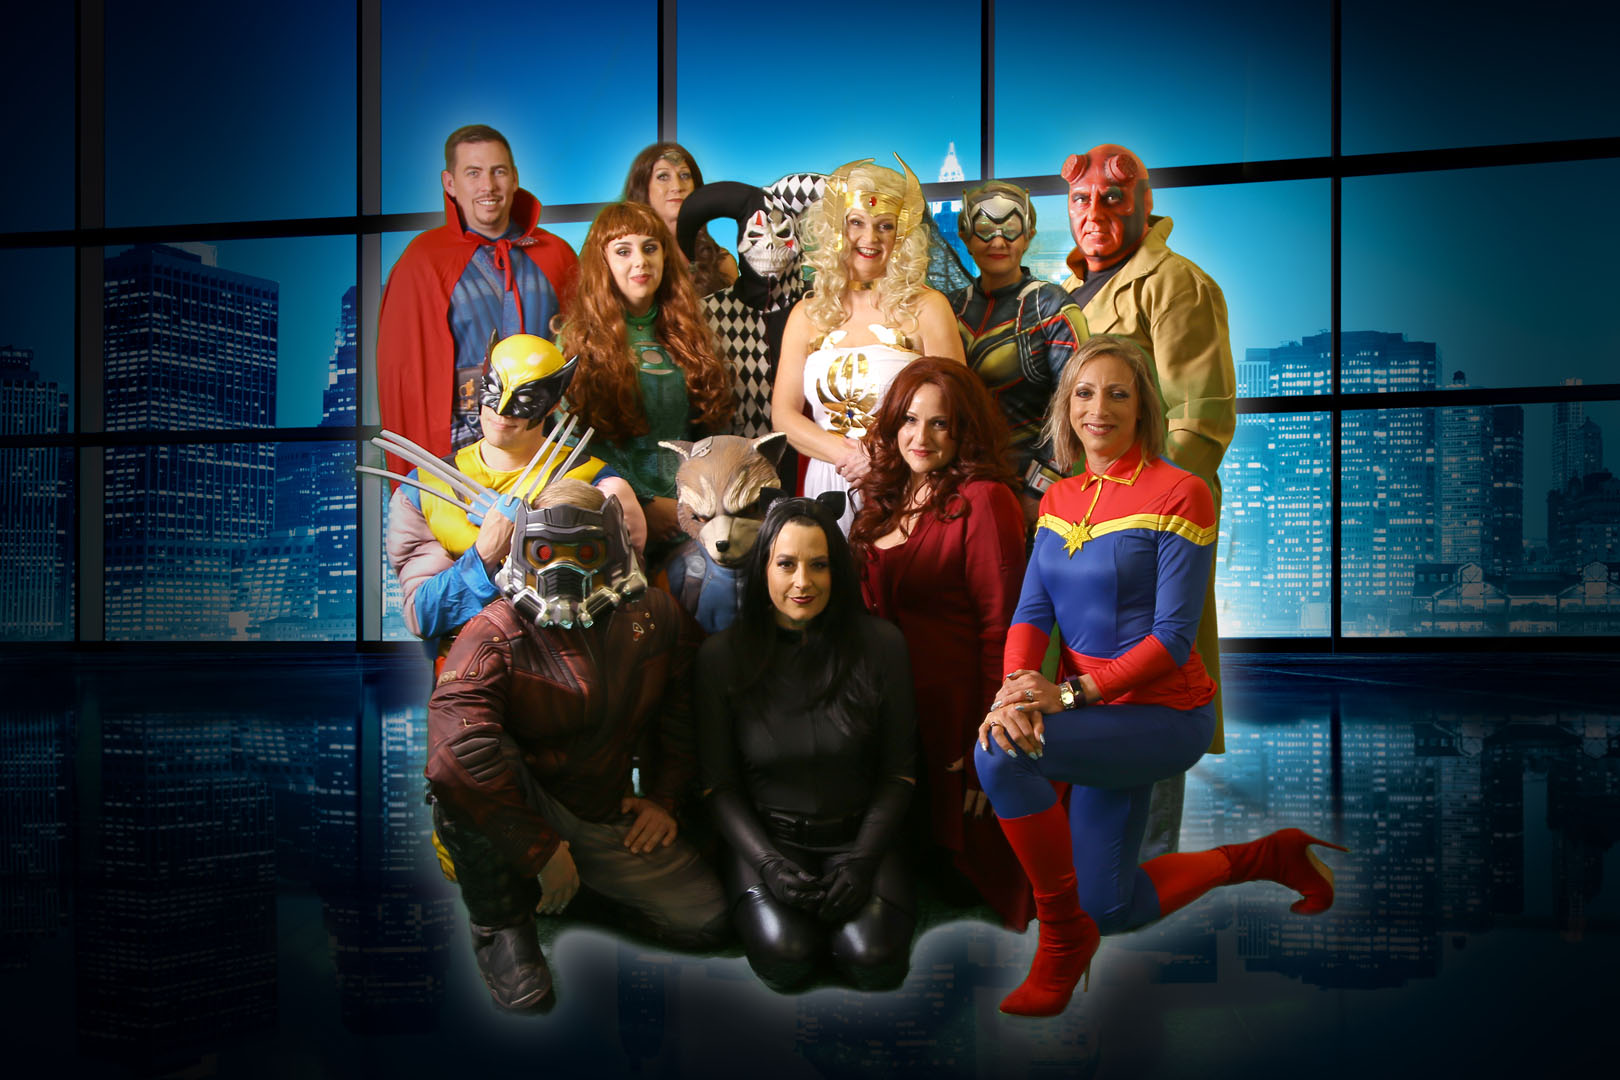 All_SuperHeros_Group